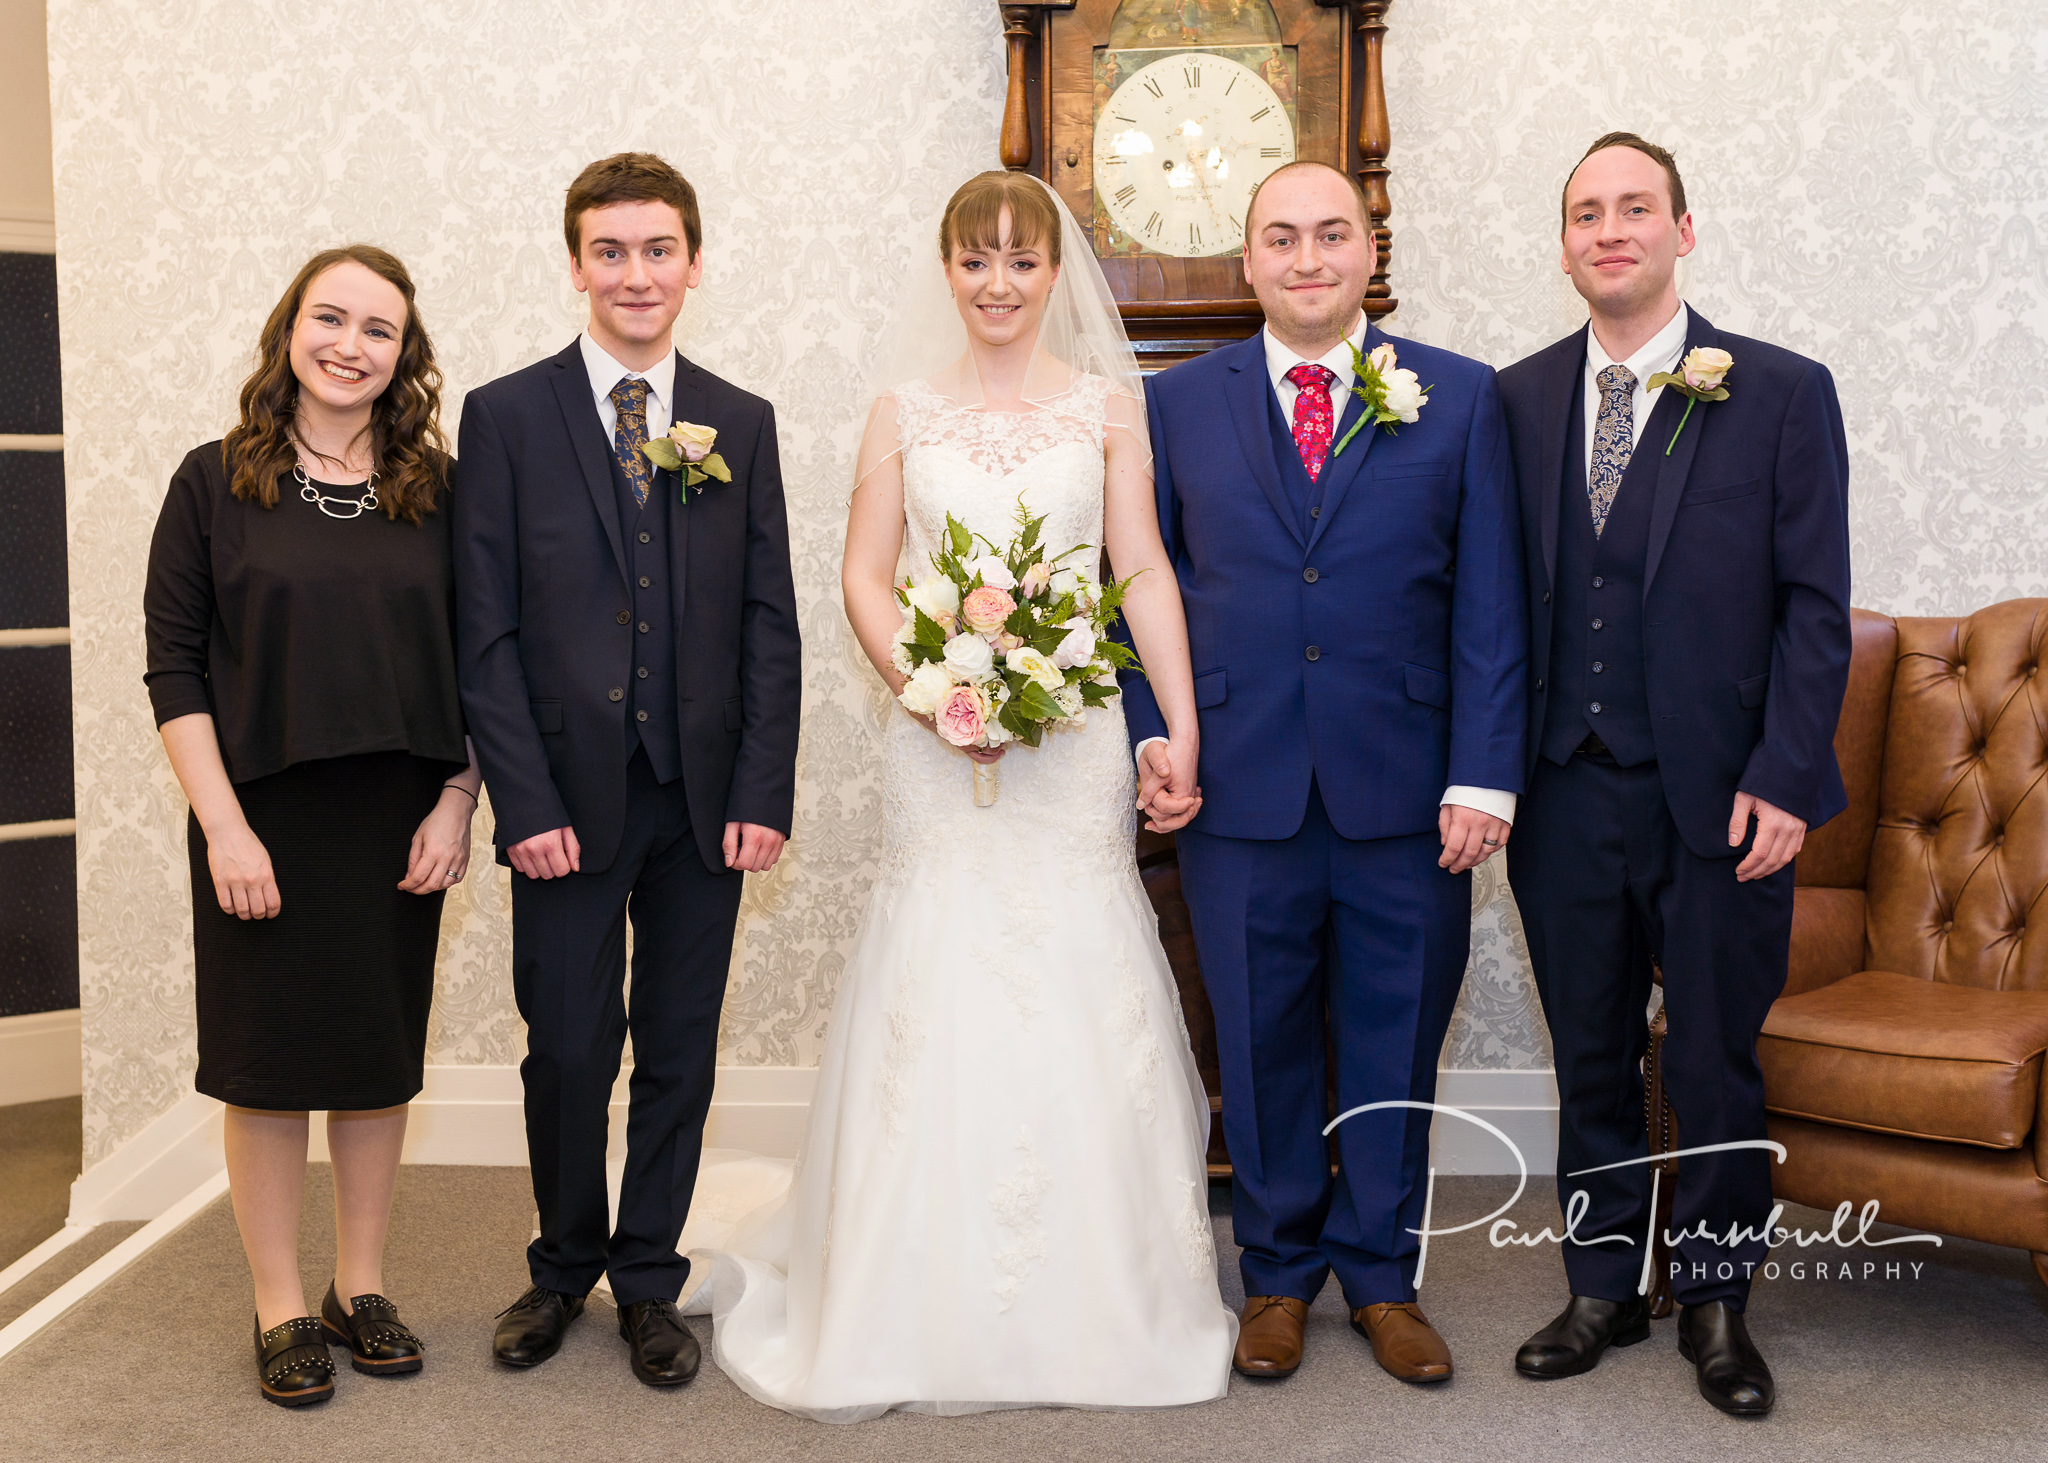 wedding-photographer-pontefract-yorkshire-laura-keanu-046.jpg